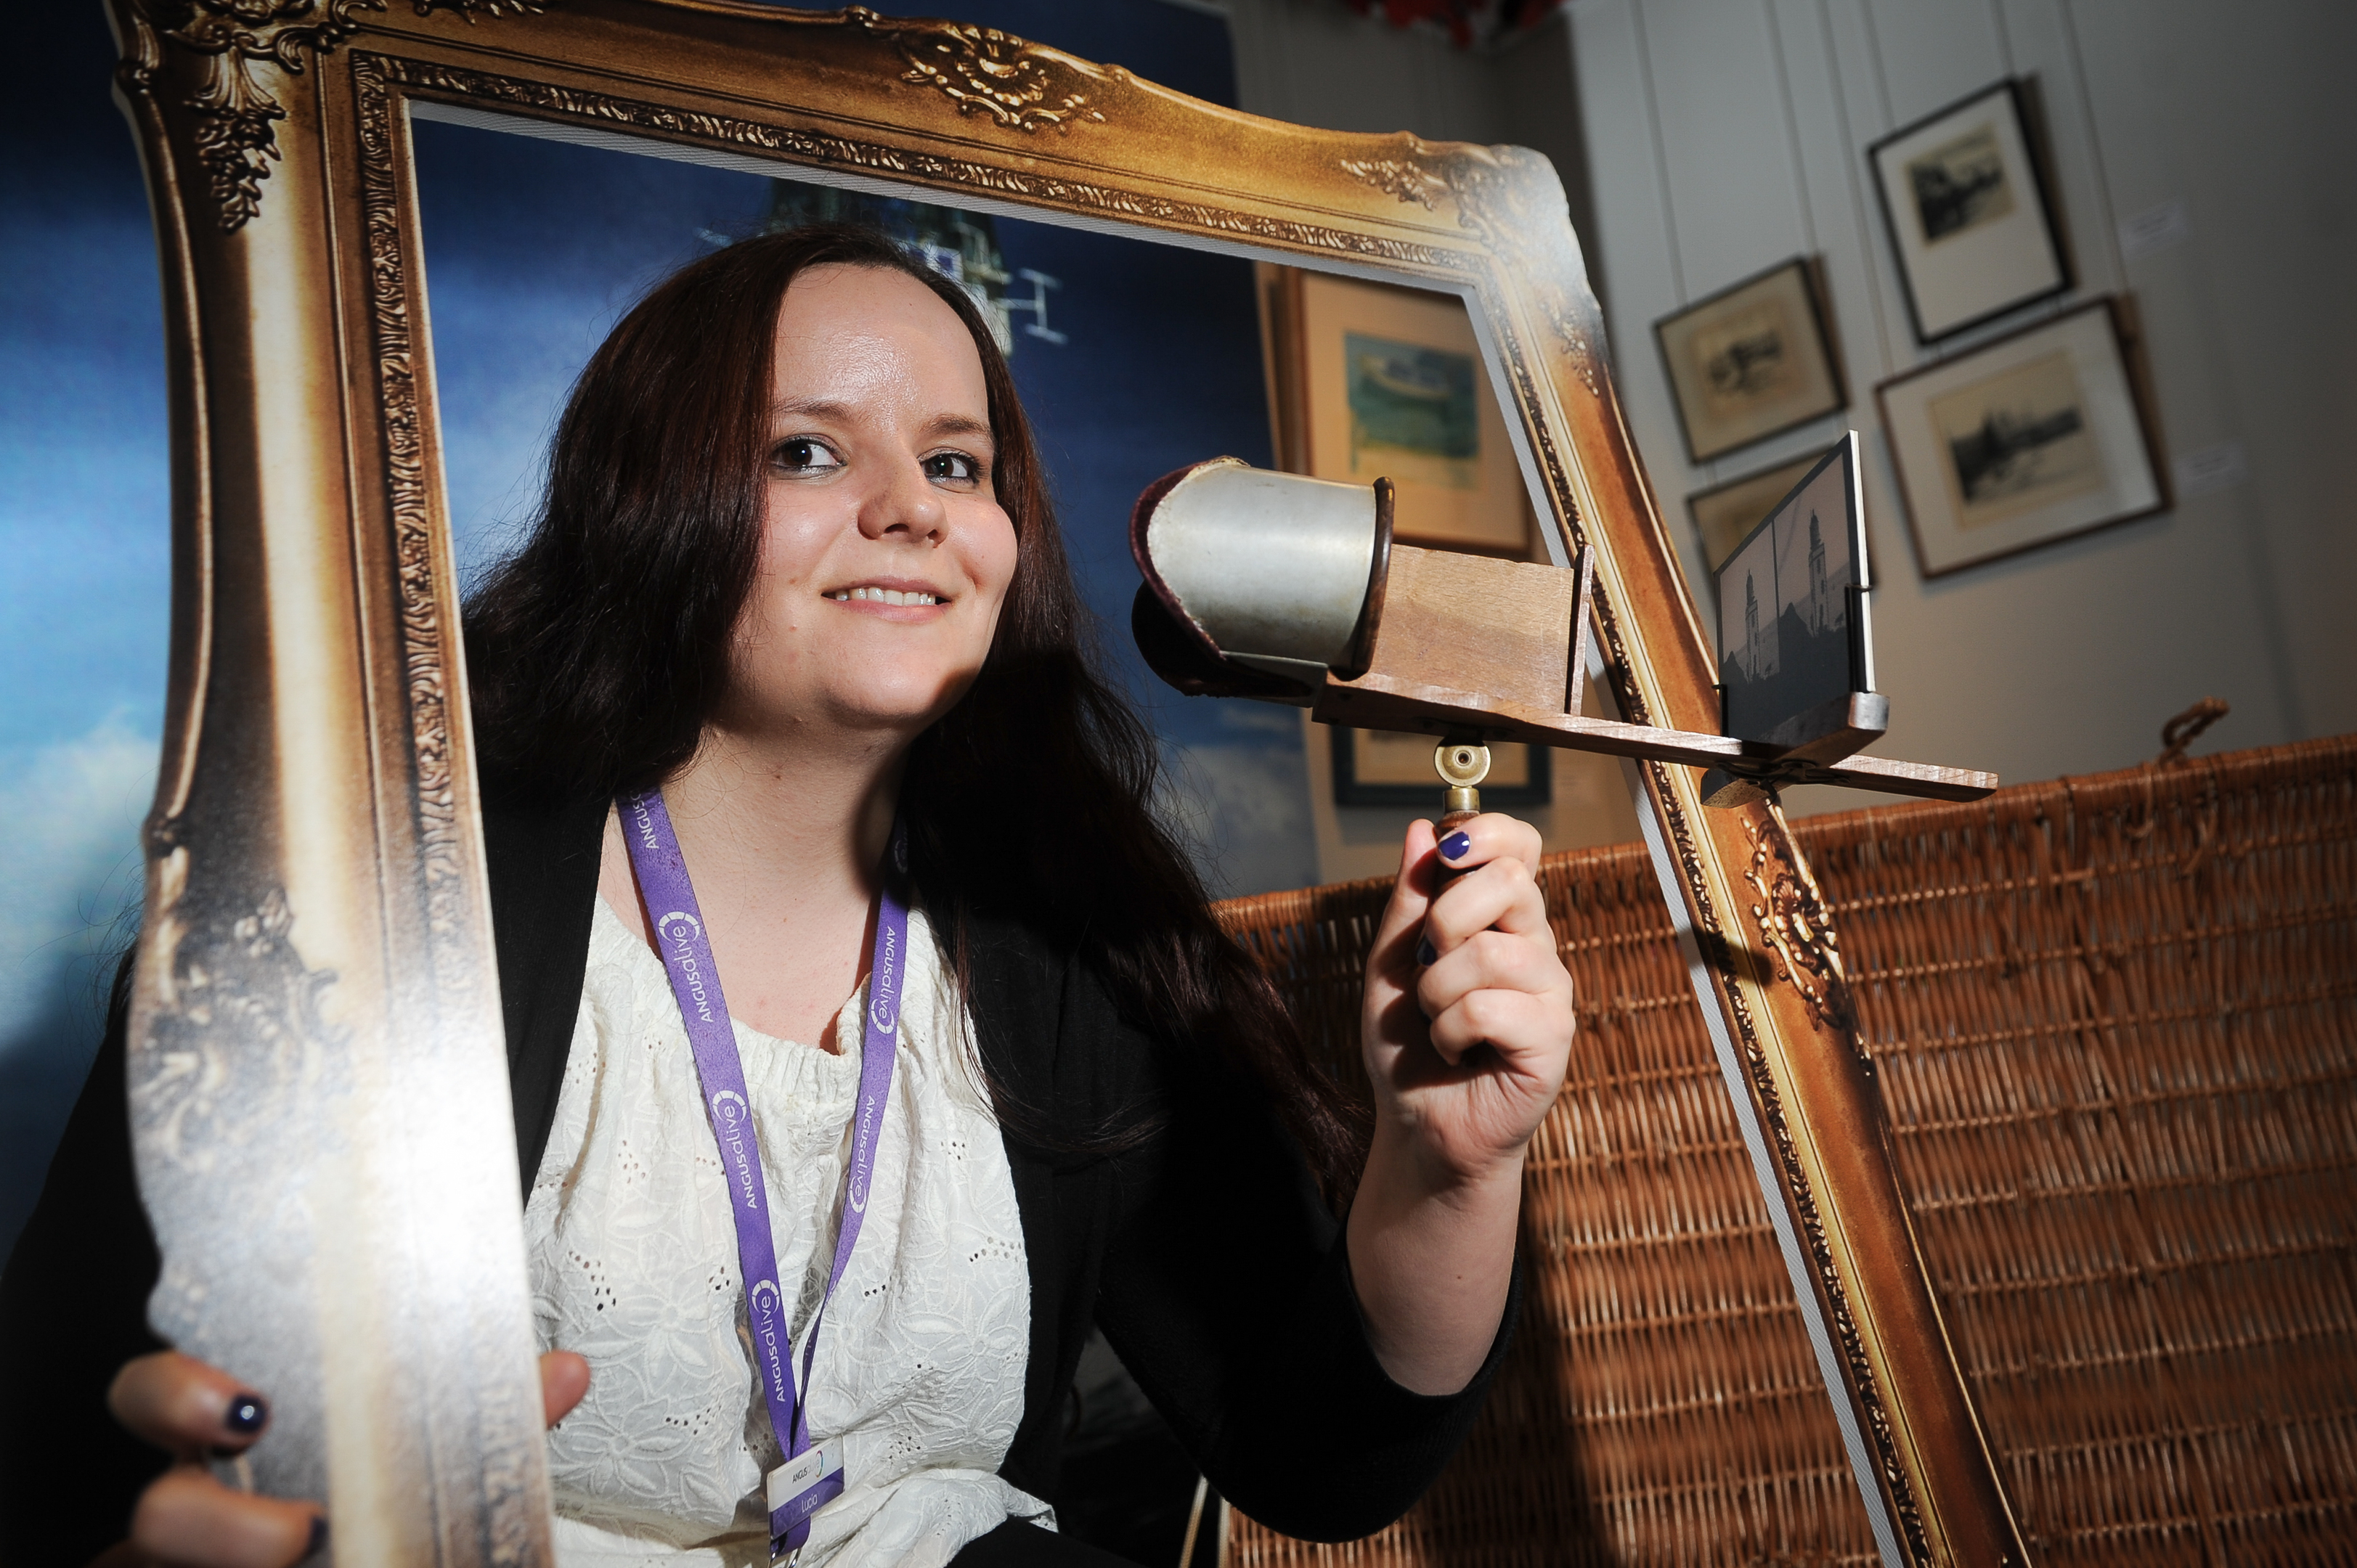 Museum assistant, Lucia Wallbank with the steroscopic viewer